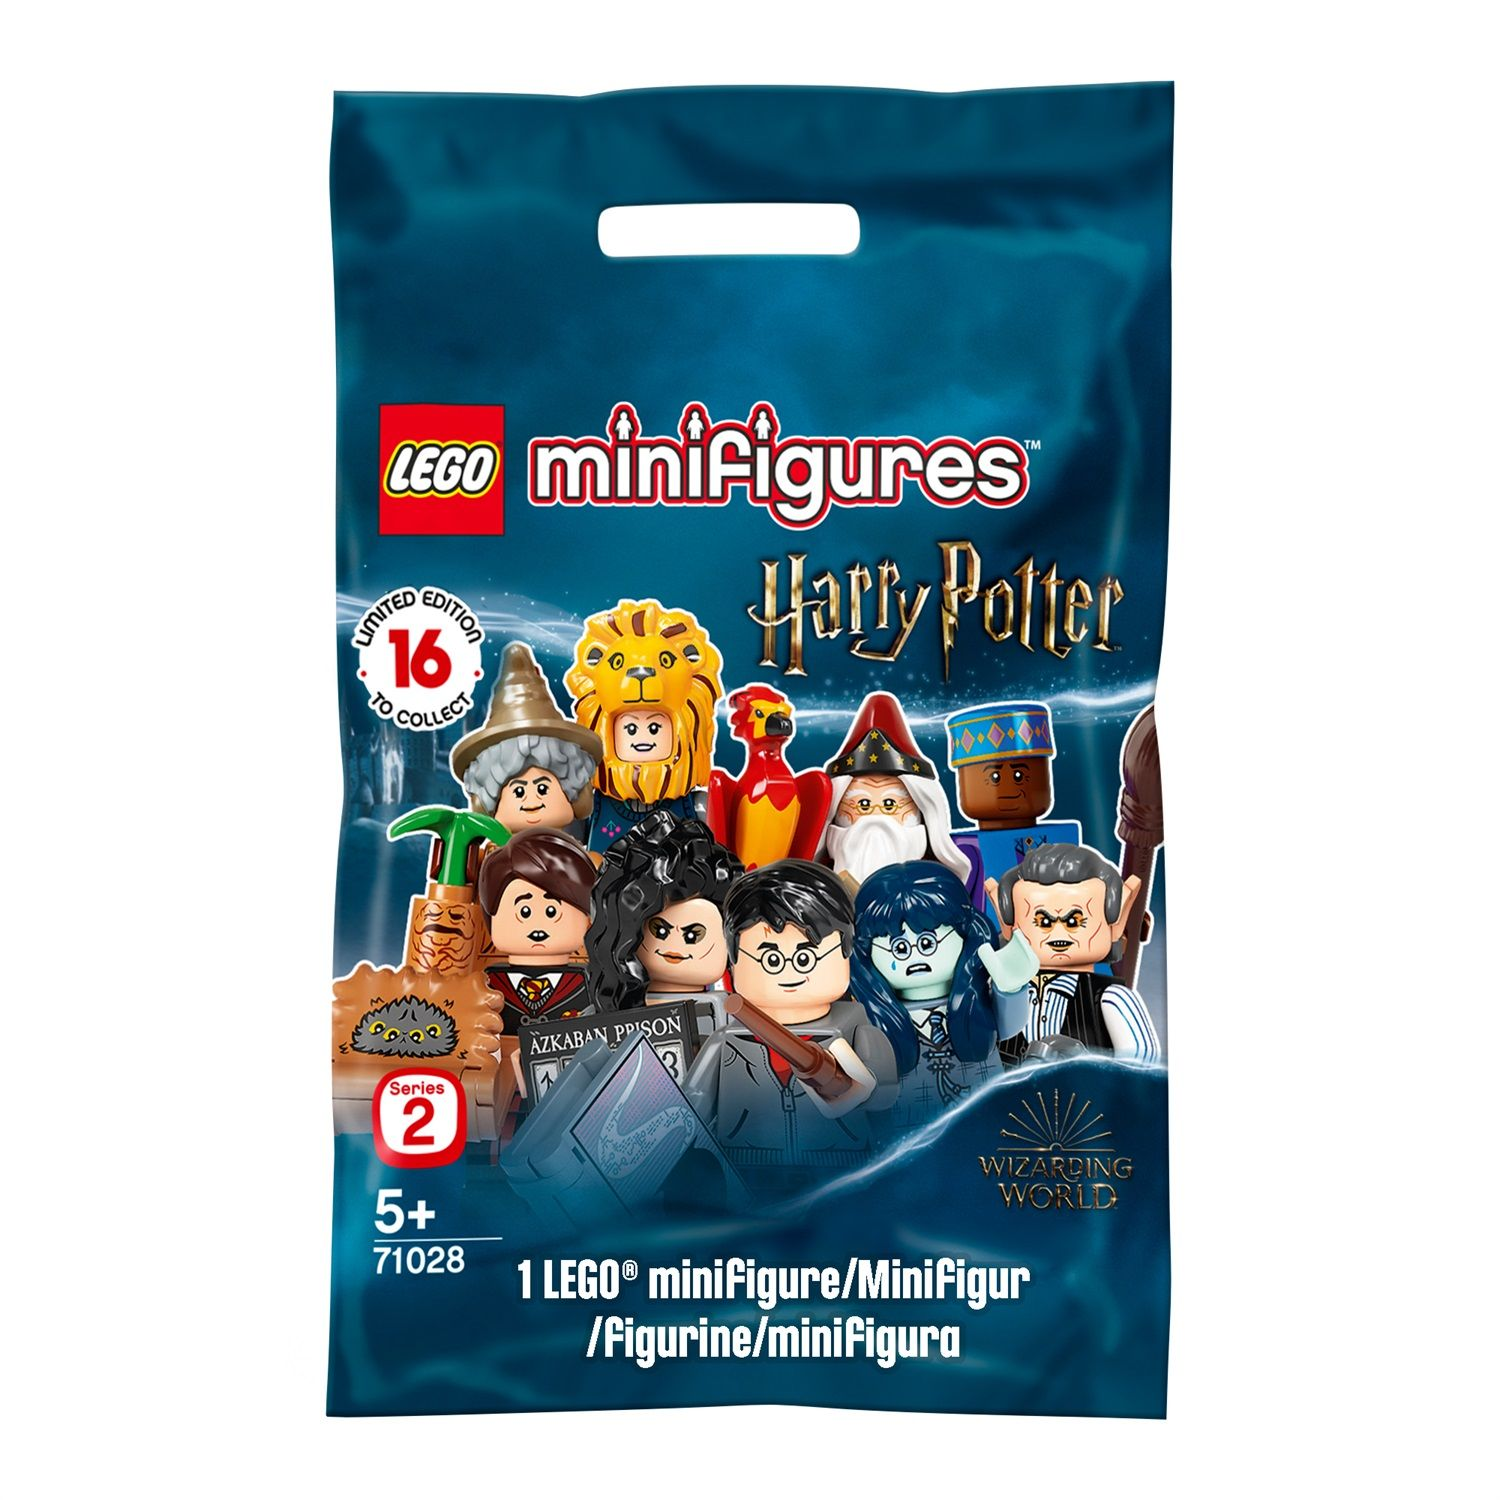 Lego Minifigures 71028 Harry Potter Serie 2